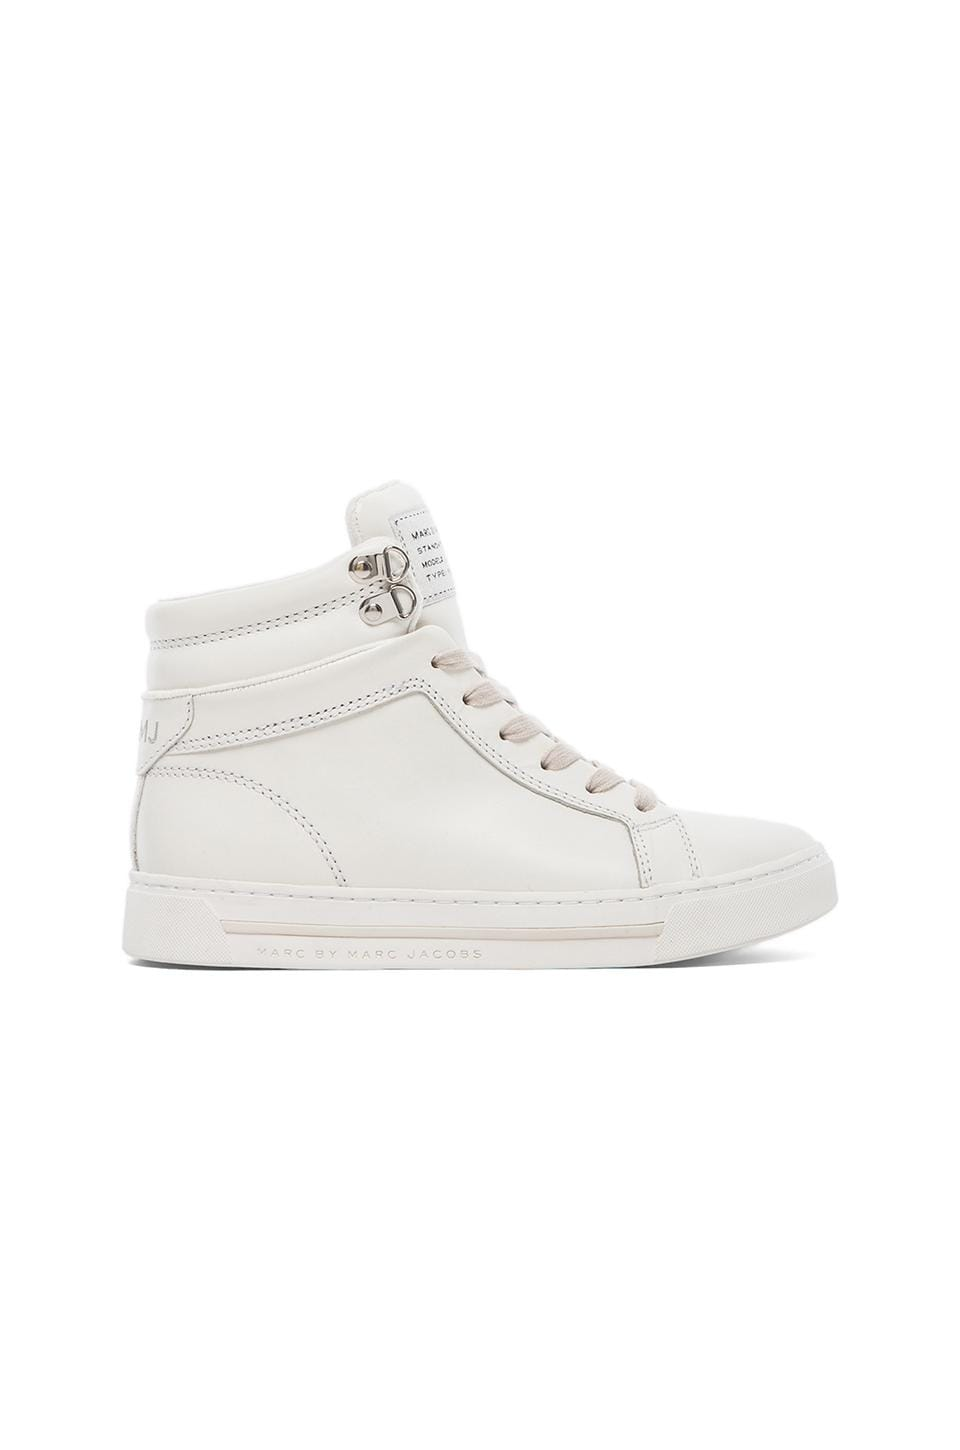 Marc by Marc Jacobs Cute Kicks Sneaker in White